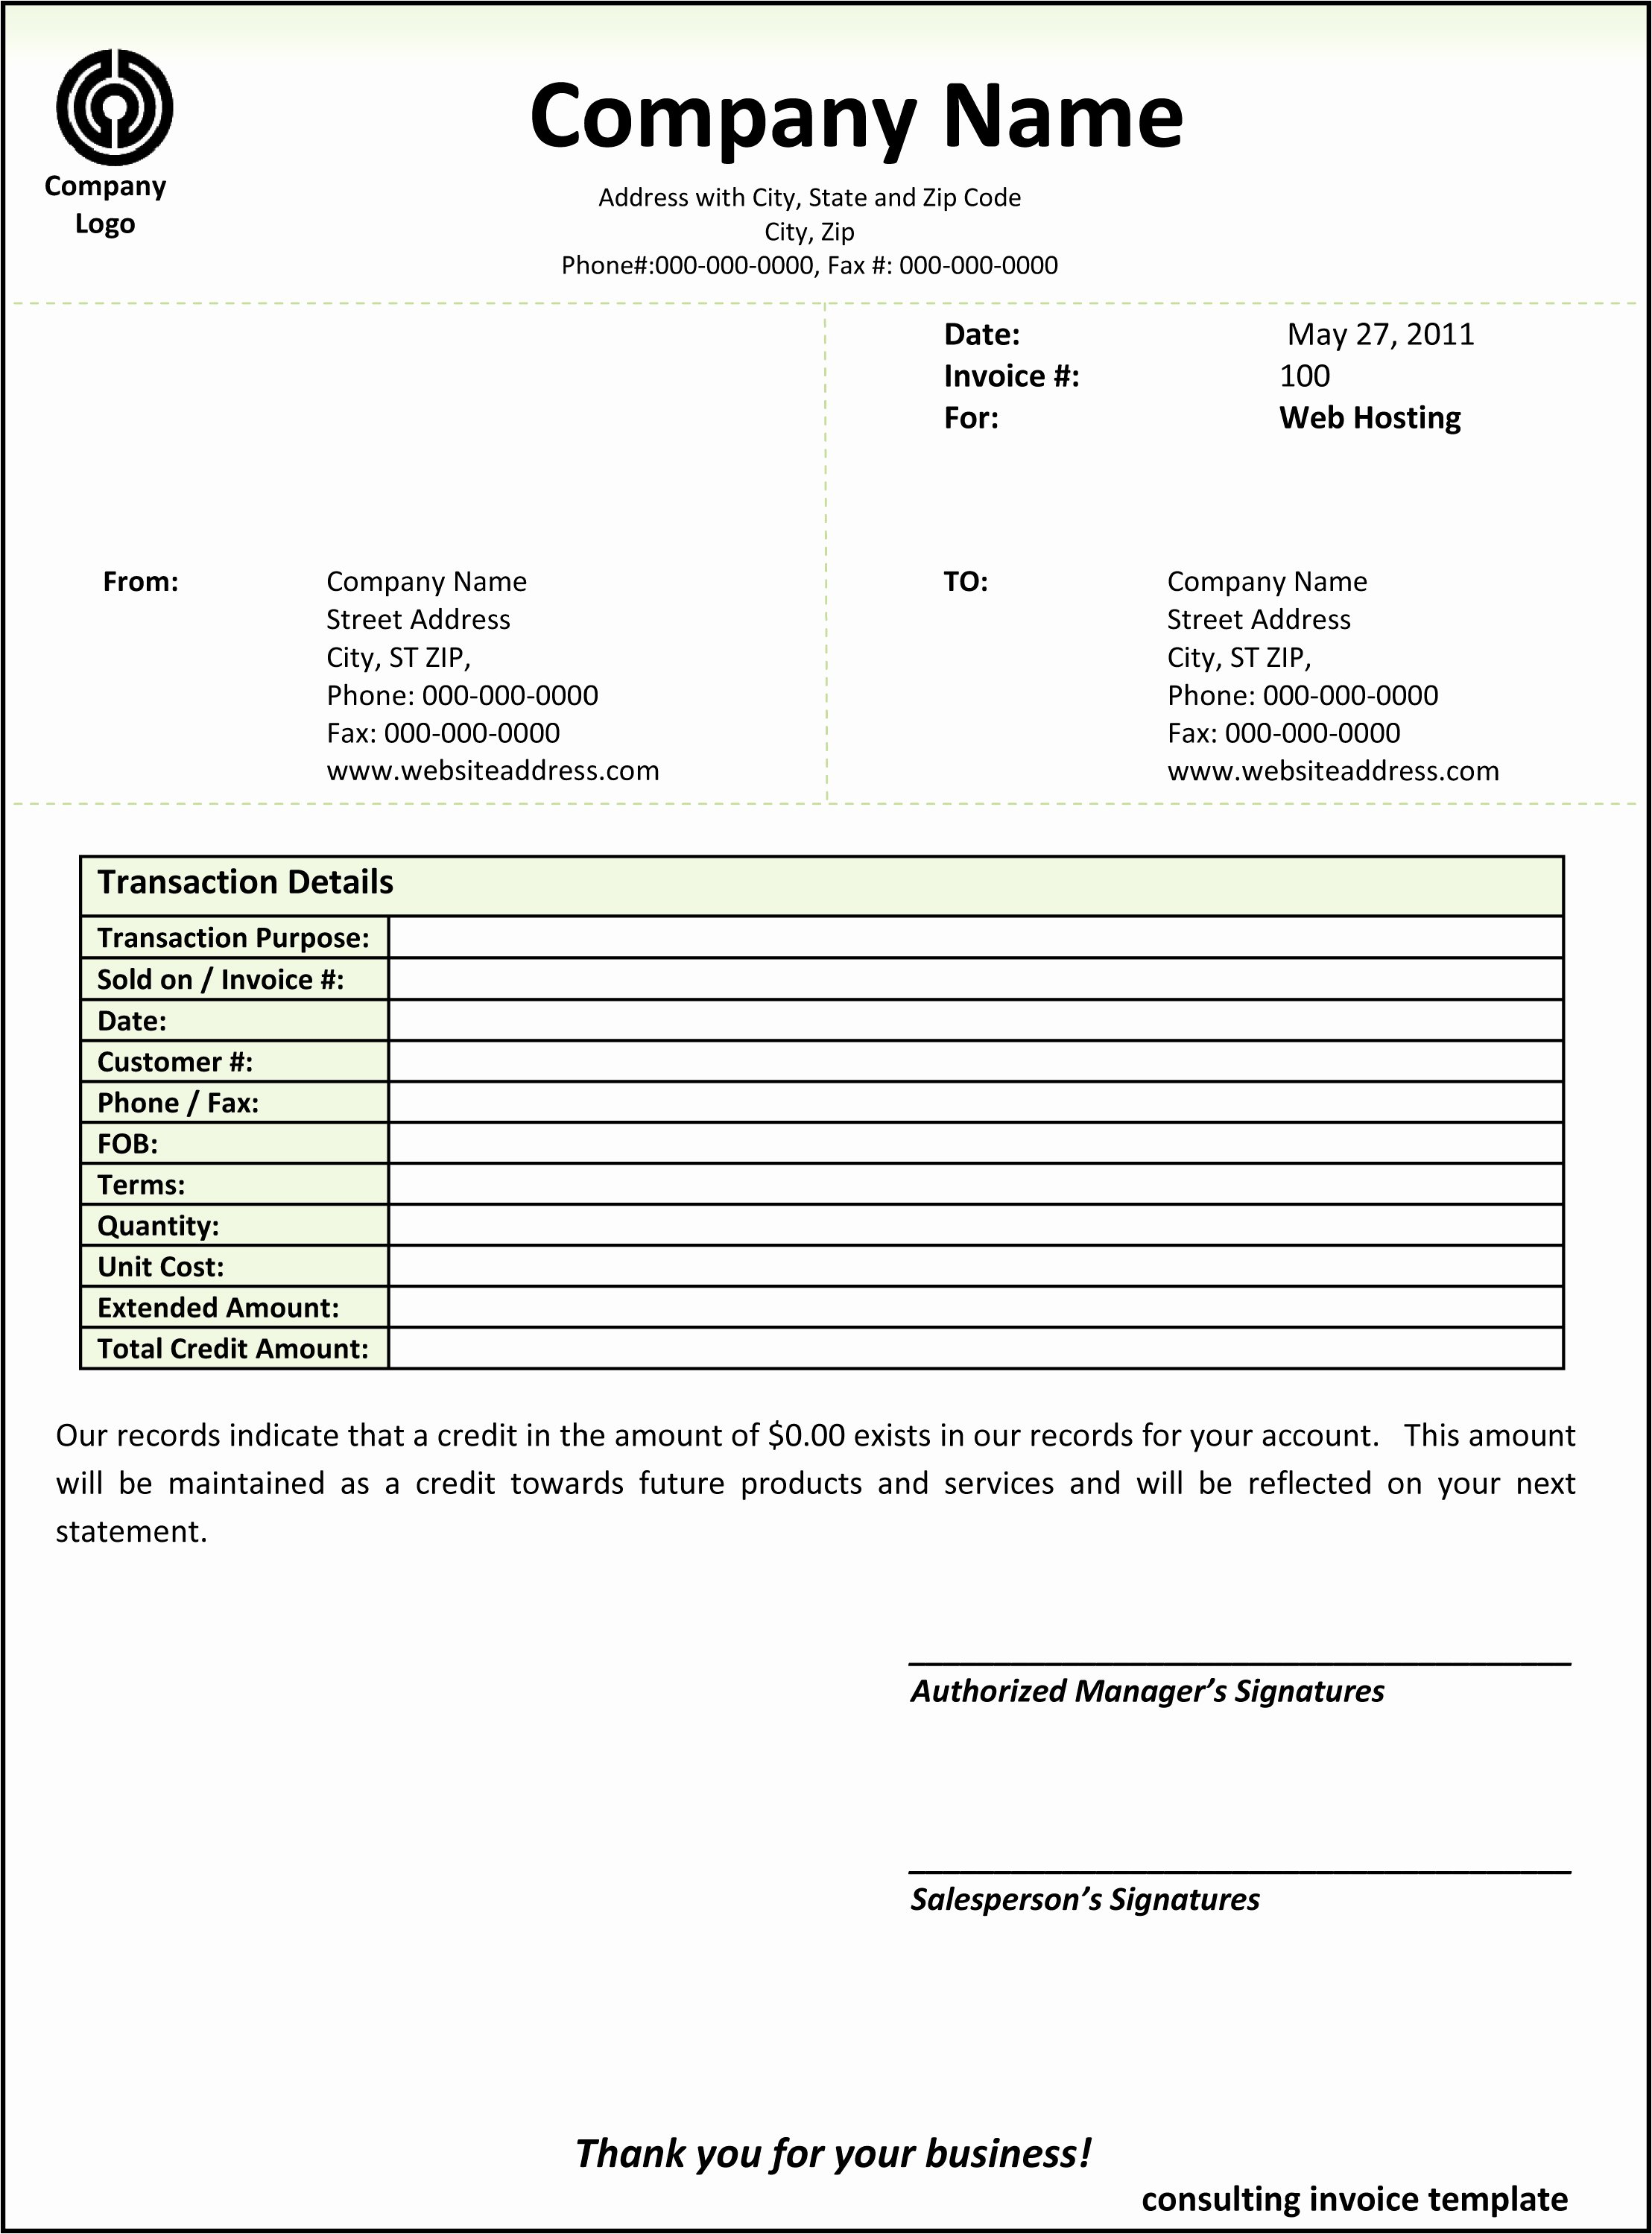 Invoice Template for Consulting Services New Consulting Invoice Template Word